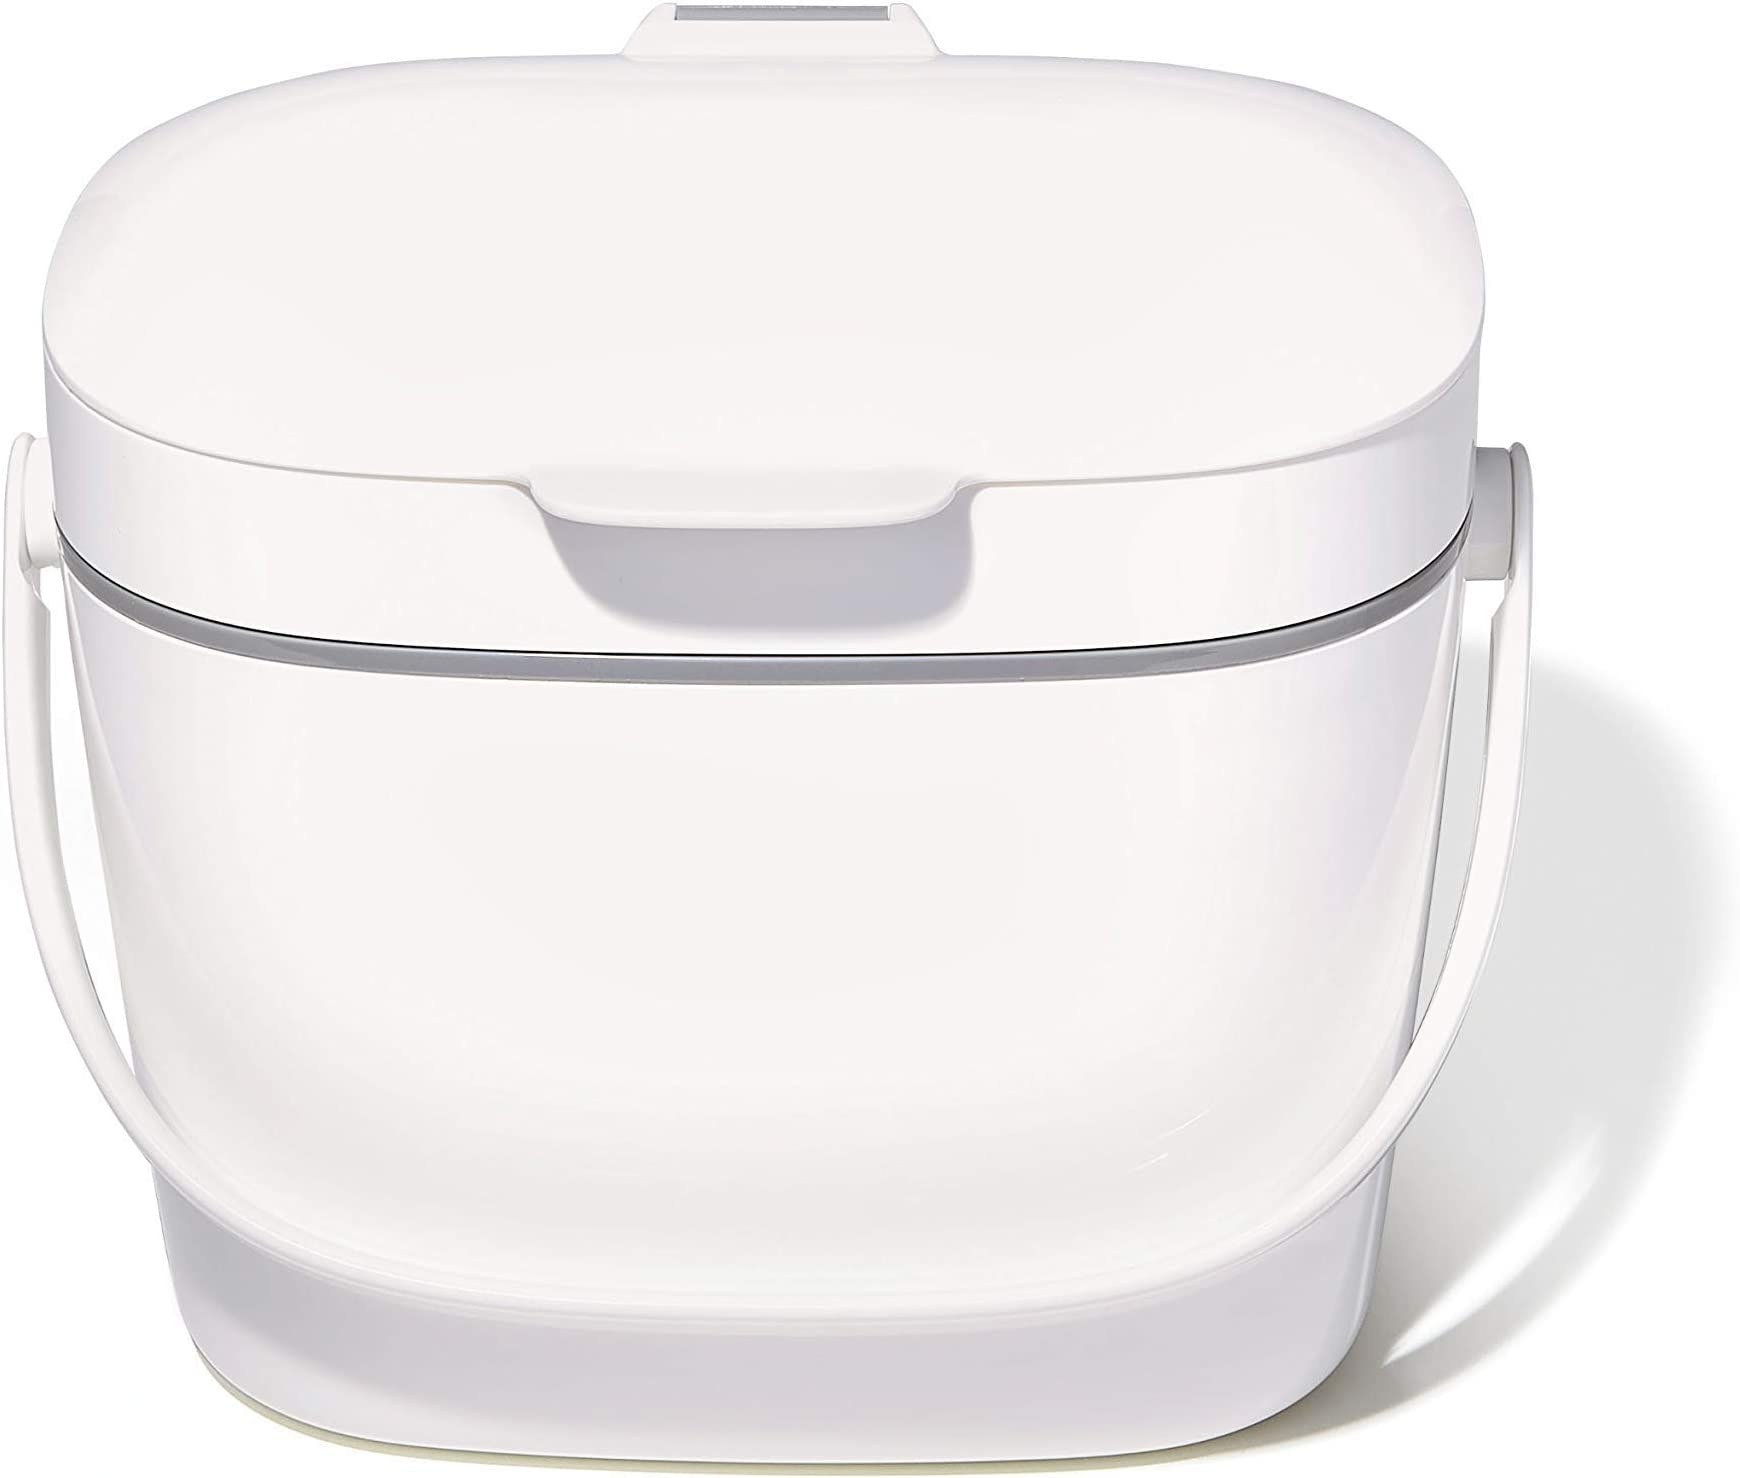 NEW OXO Good Grips Easy-Clean Compost Bin - 1.75 GAL/6.62 L